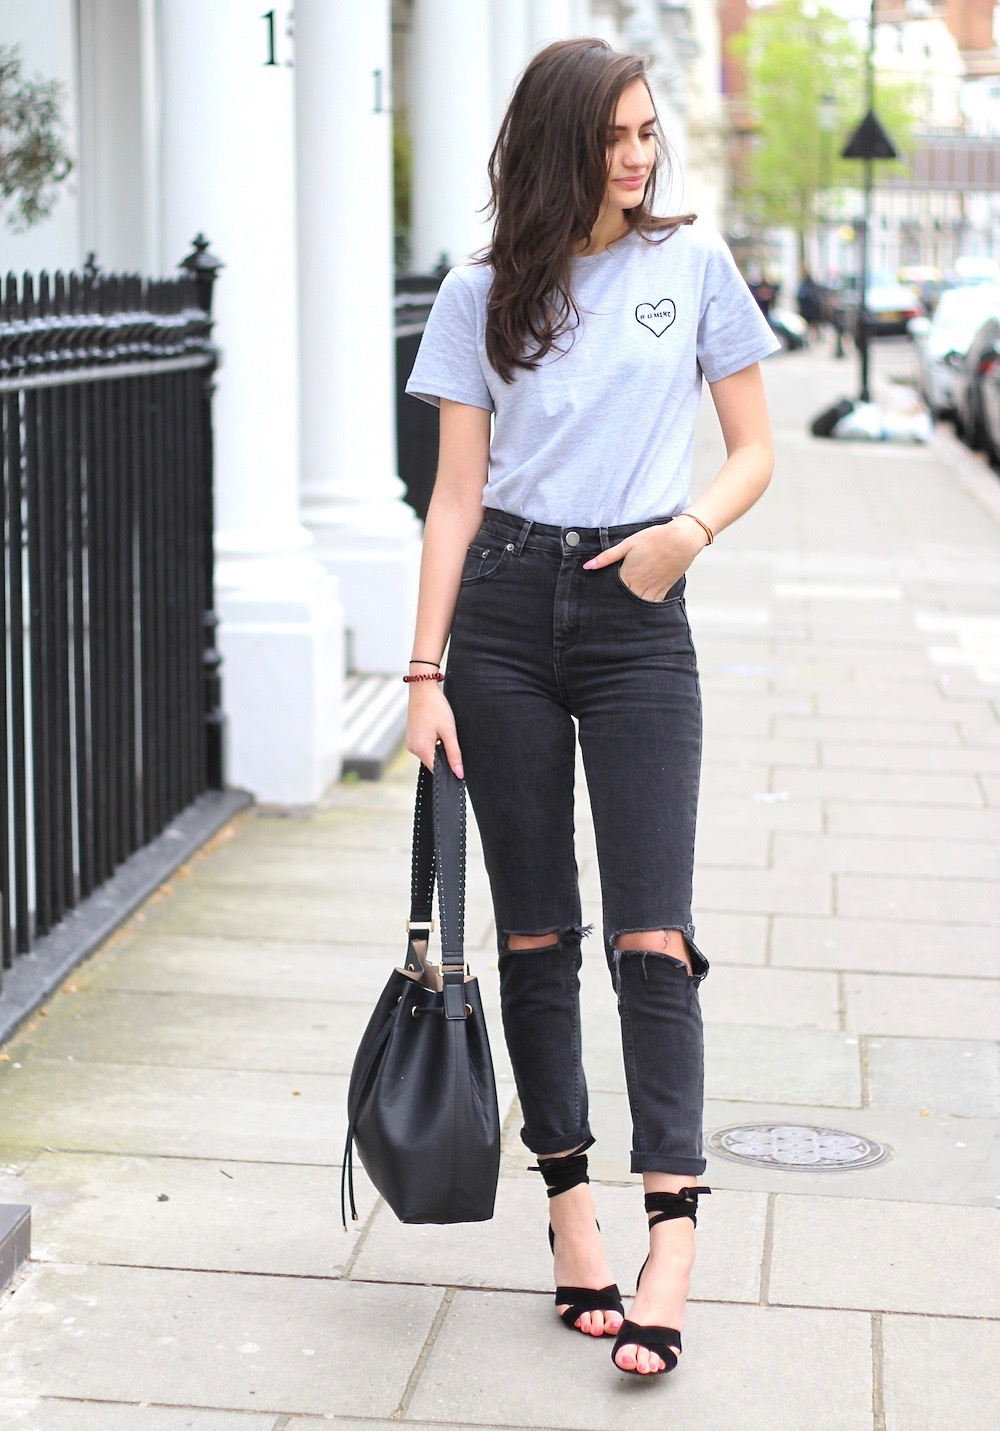 peexo personal style blogger monochrome outfit